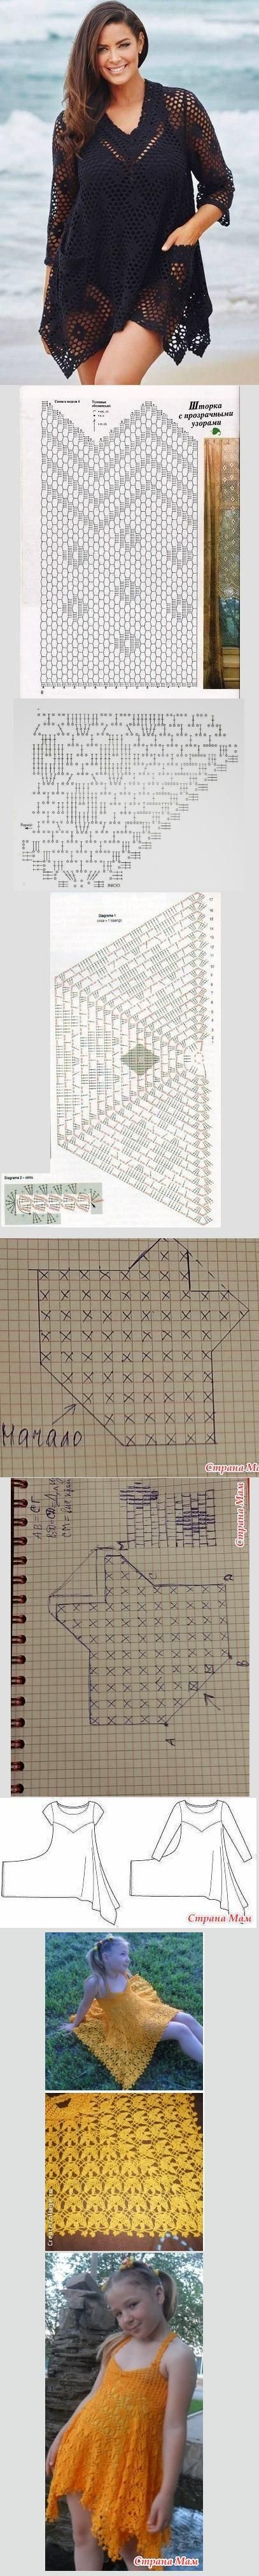 Bathing suit cover pattern.